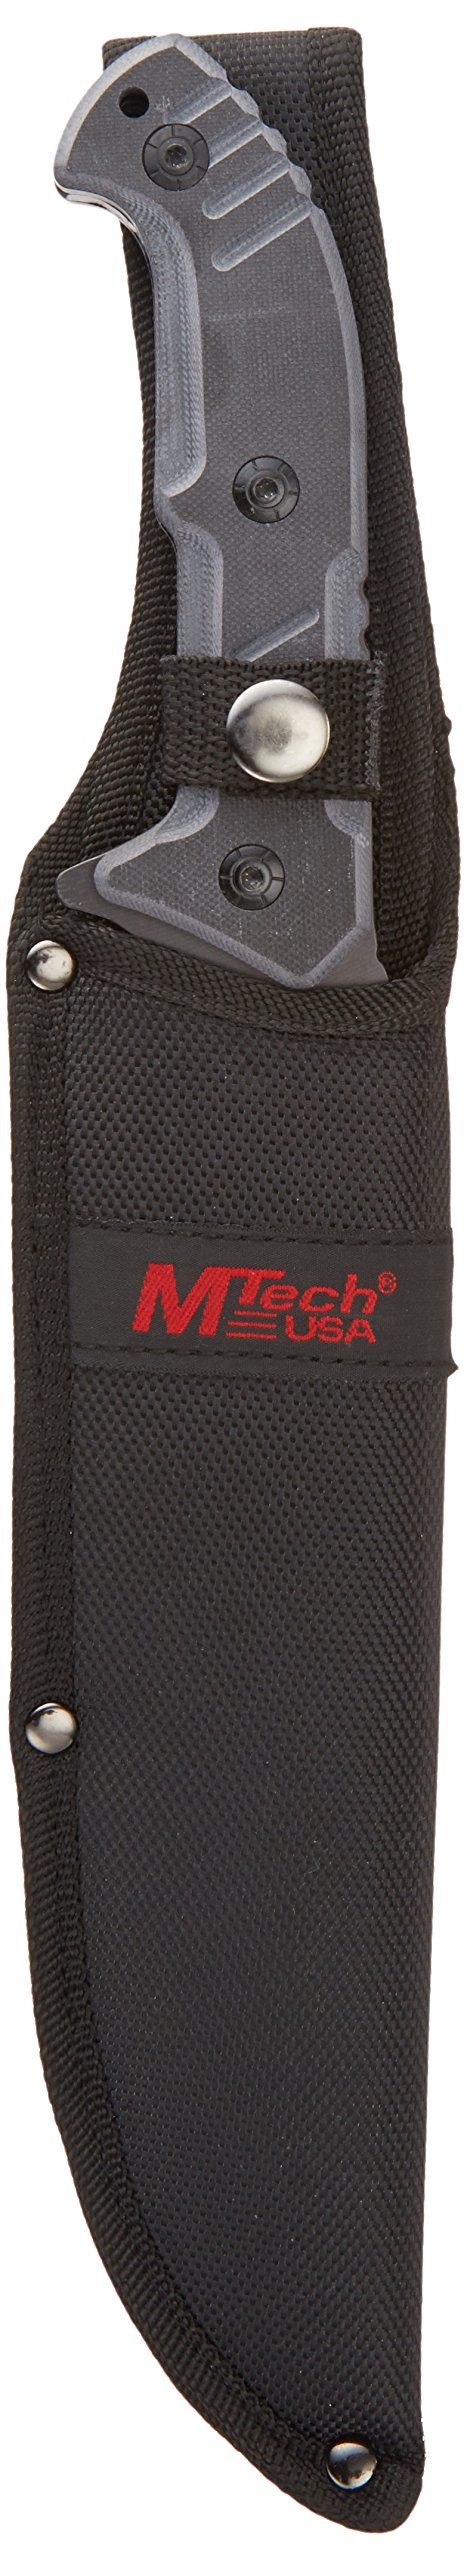 MTECH USA MT-20-39 Fixed Blade Knife, Black Clip Point Blade, Black G10 Handle, 14-Inch Overall